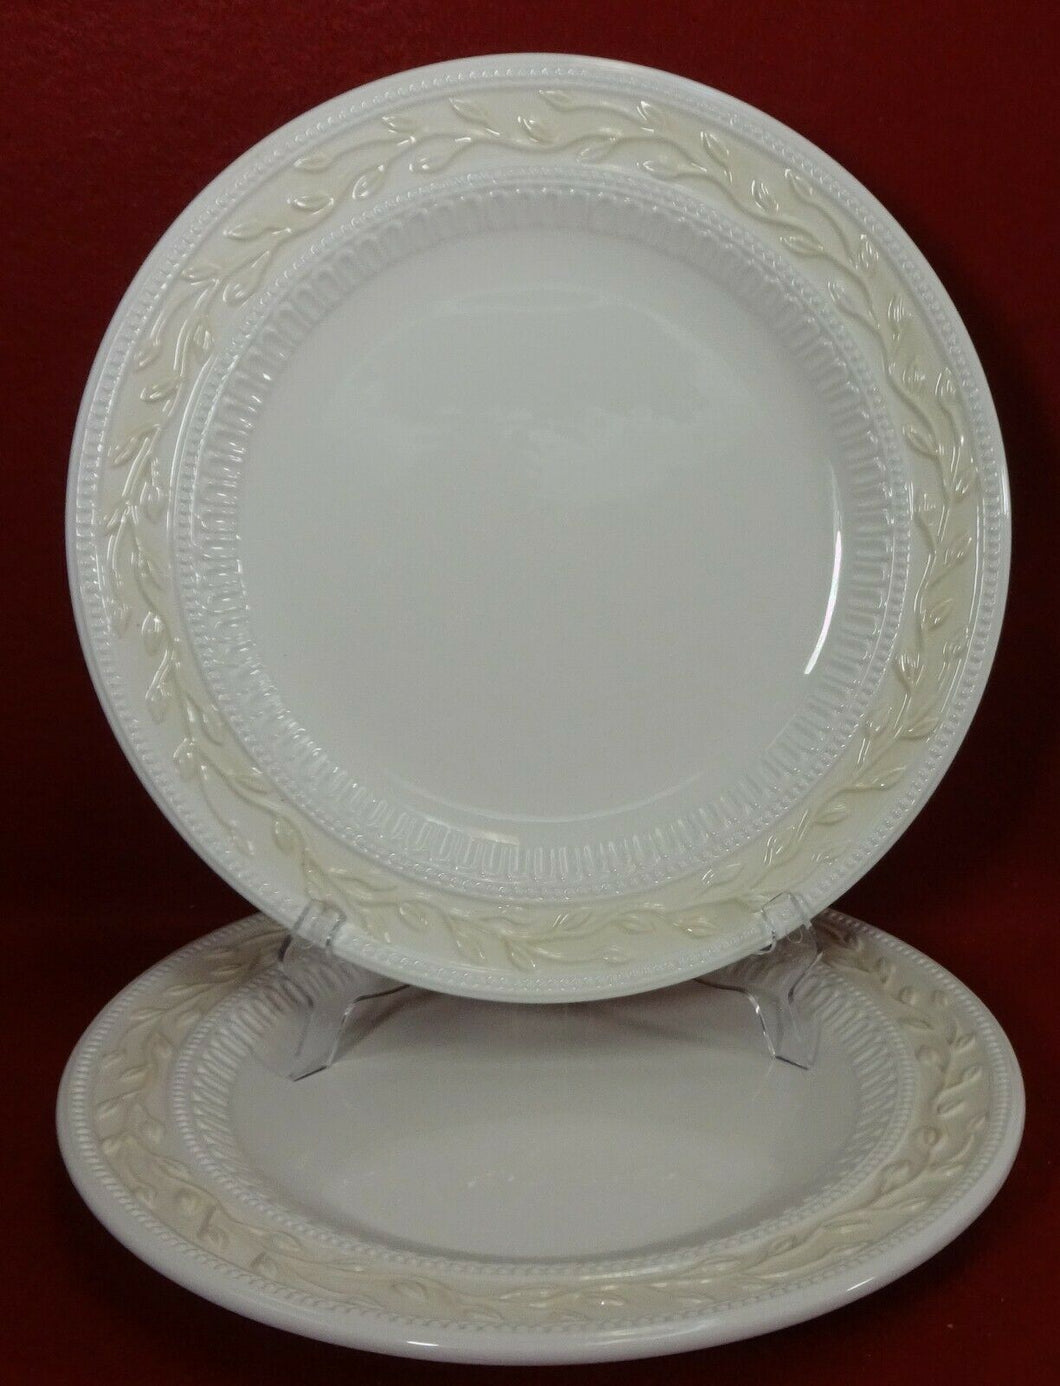 SIGNATURE china LOURDES Set of 2 Round Luncheon, Salad or Dessert Plates 8-7/8